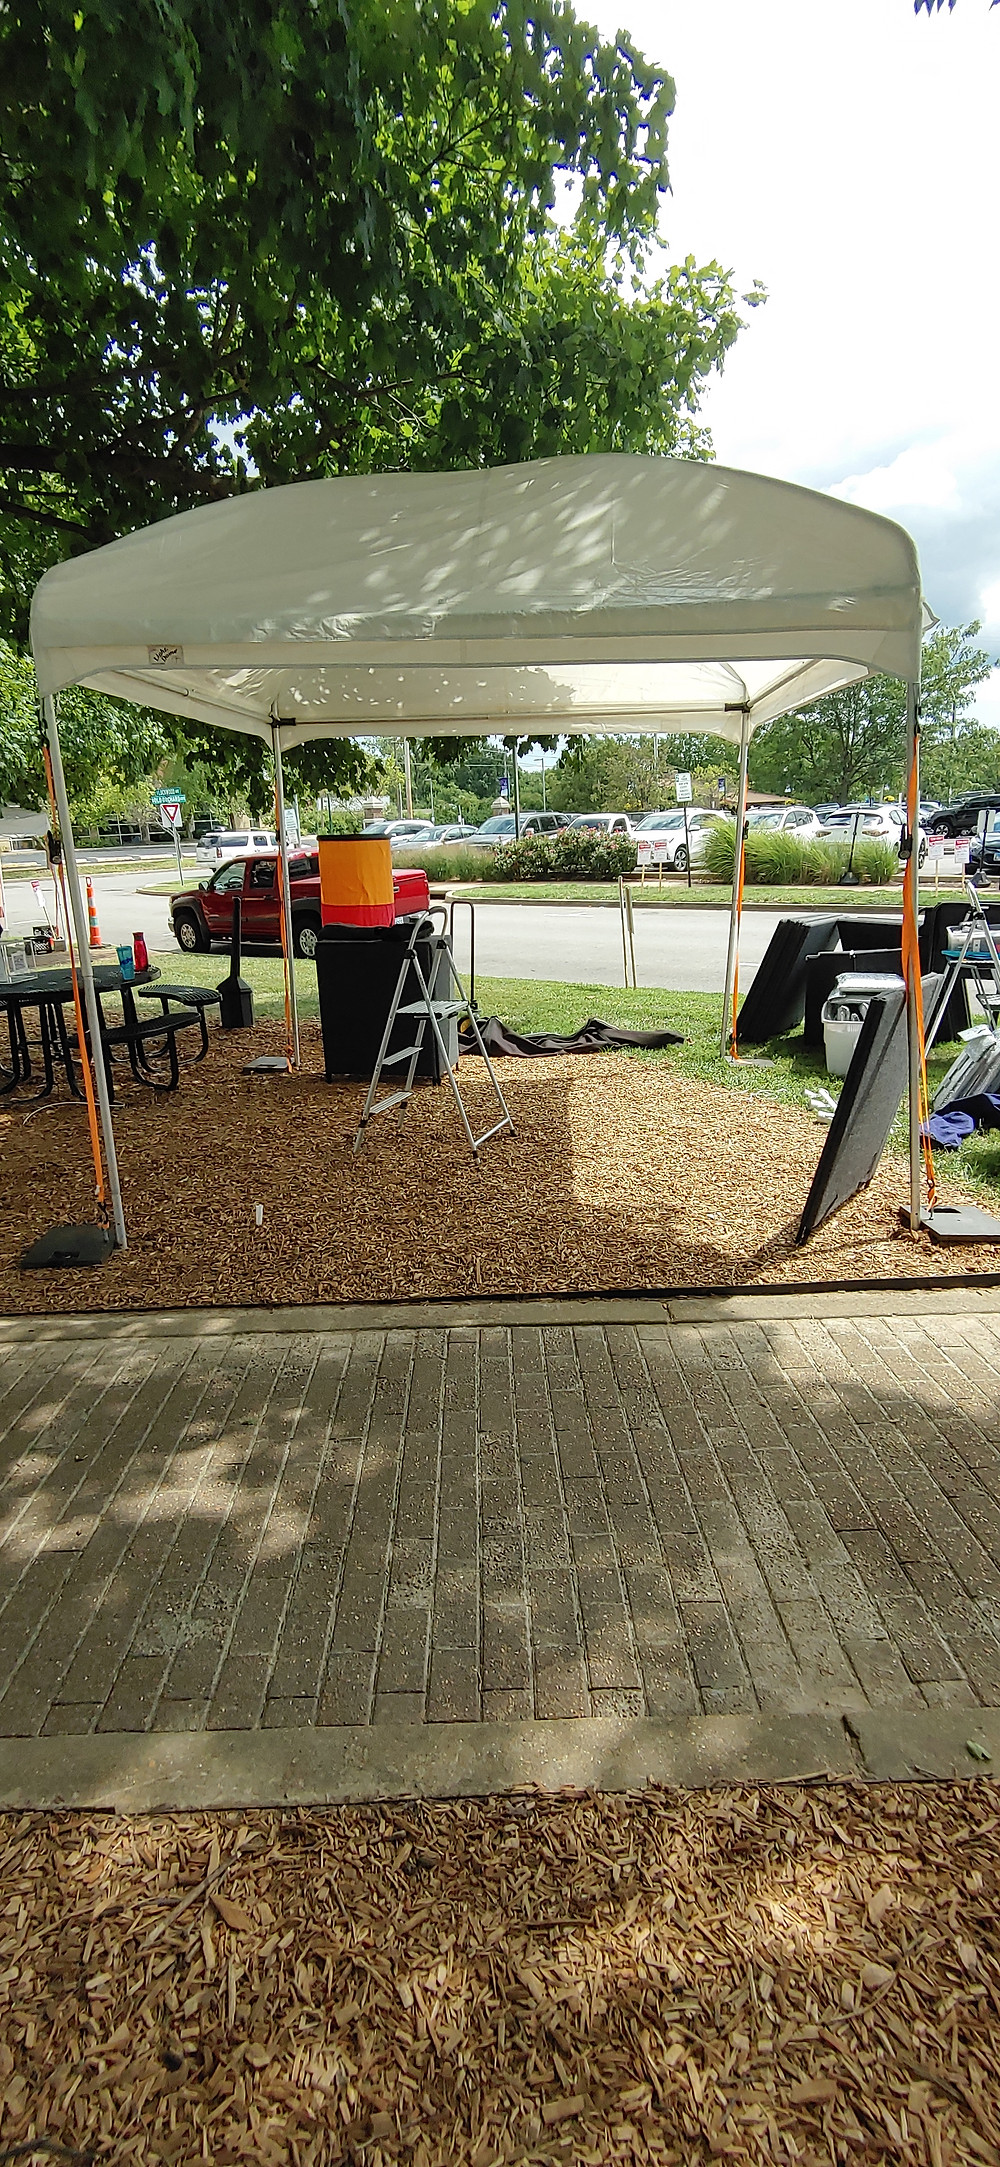 Lisa's tent and canopy